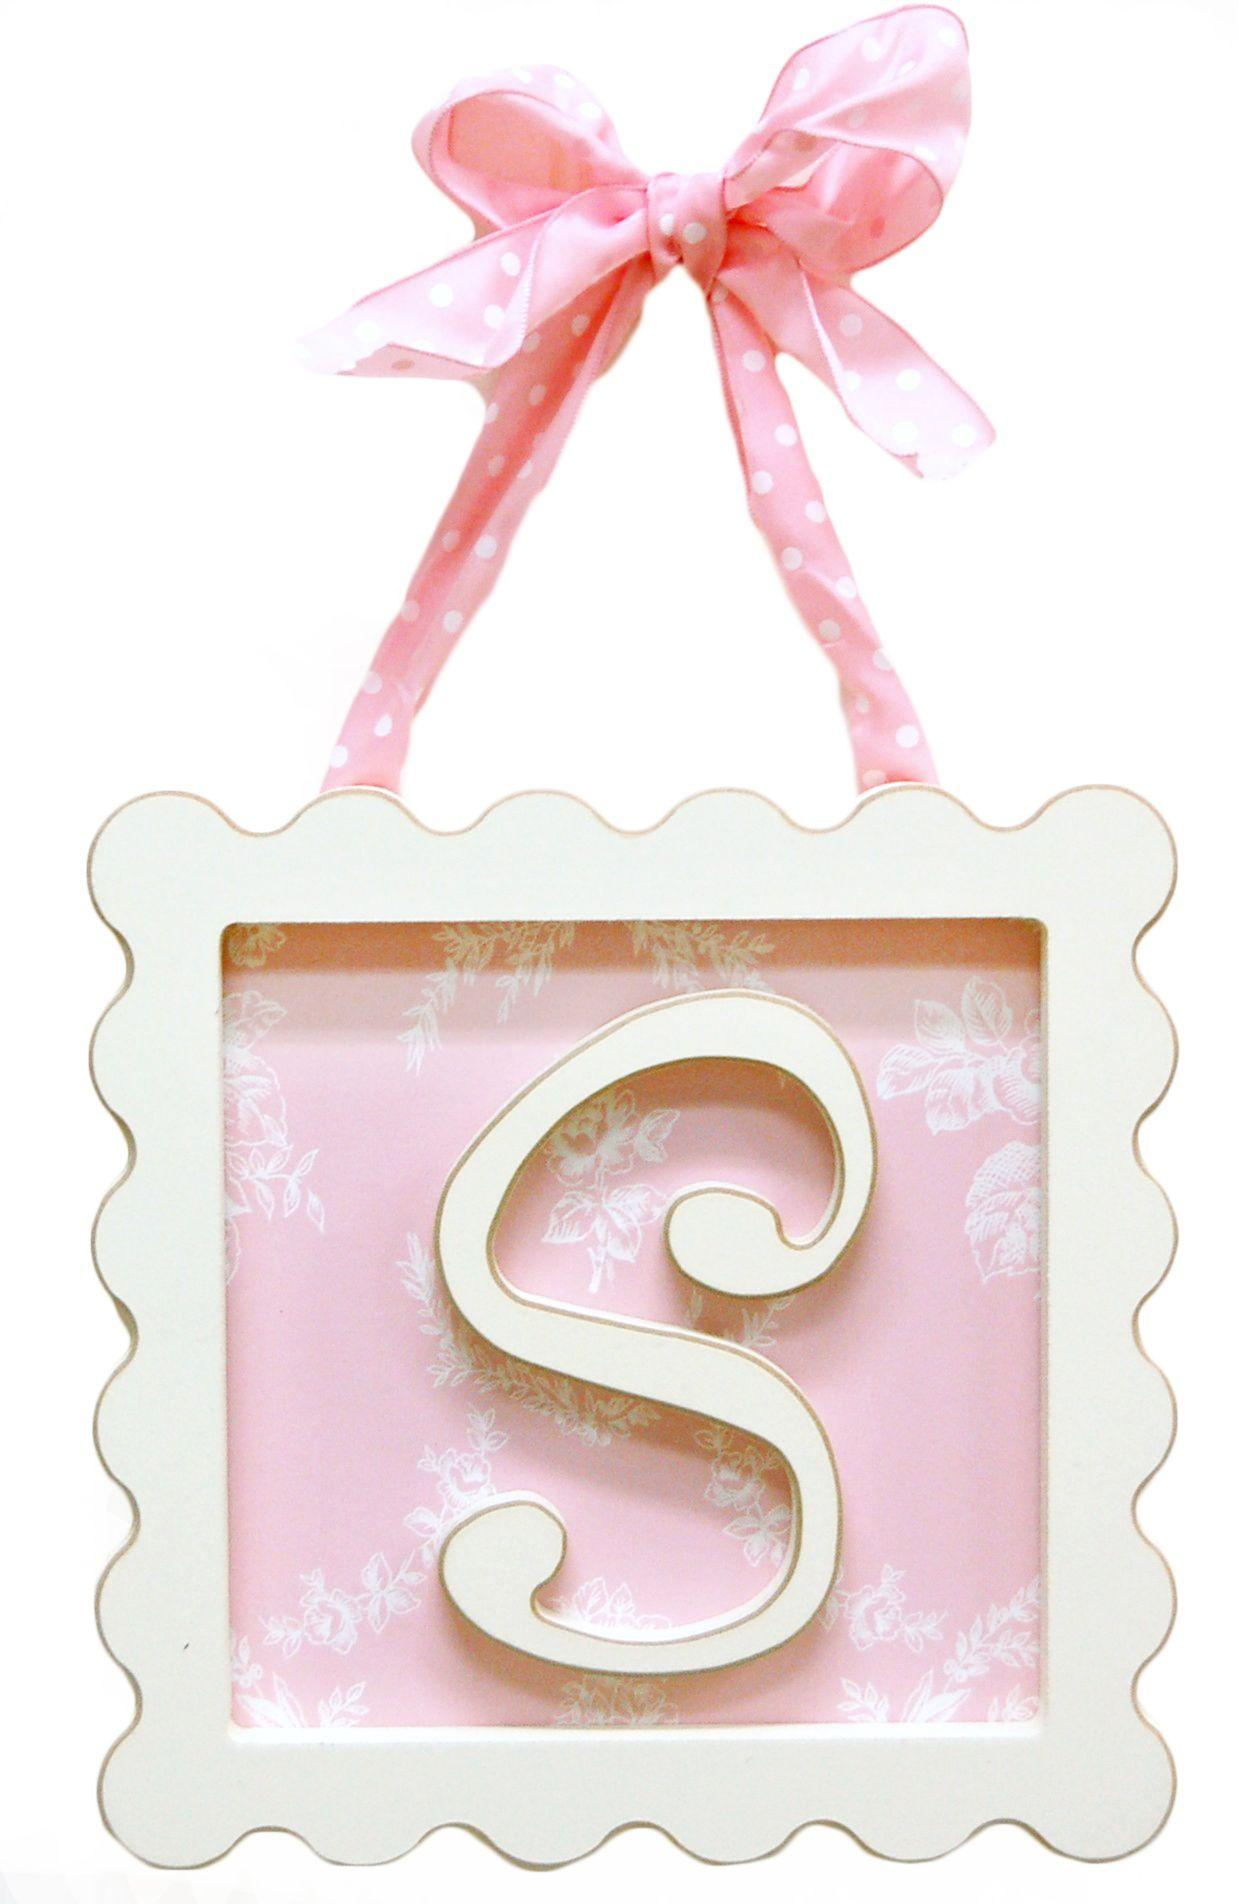 S S Letter In Love Wallpapers S S Letter In L...